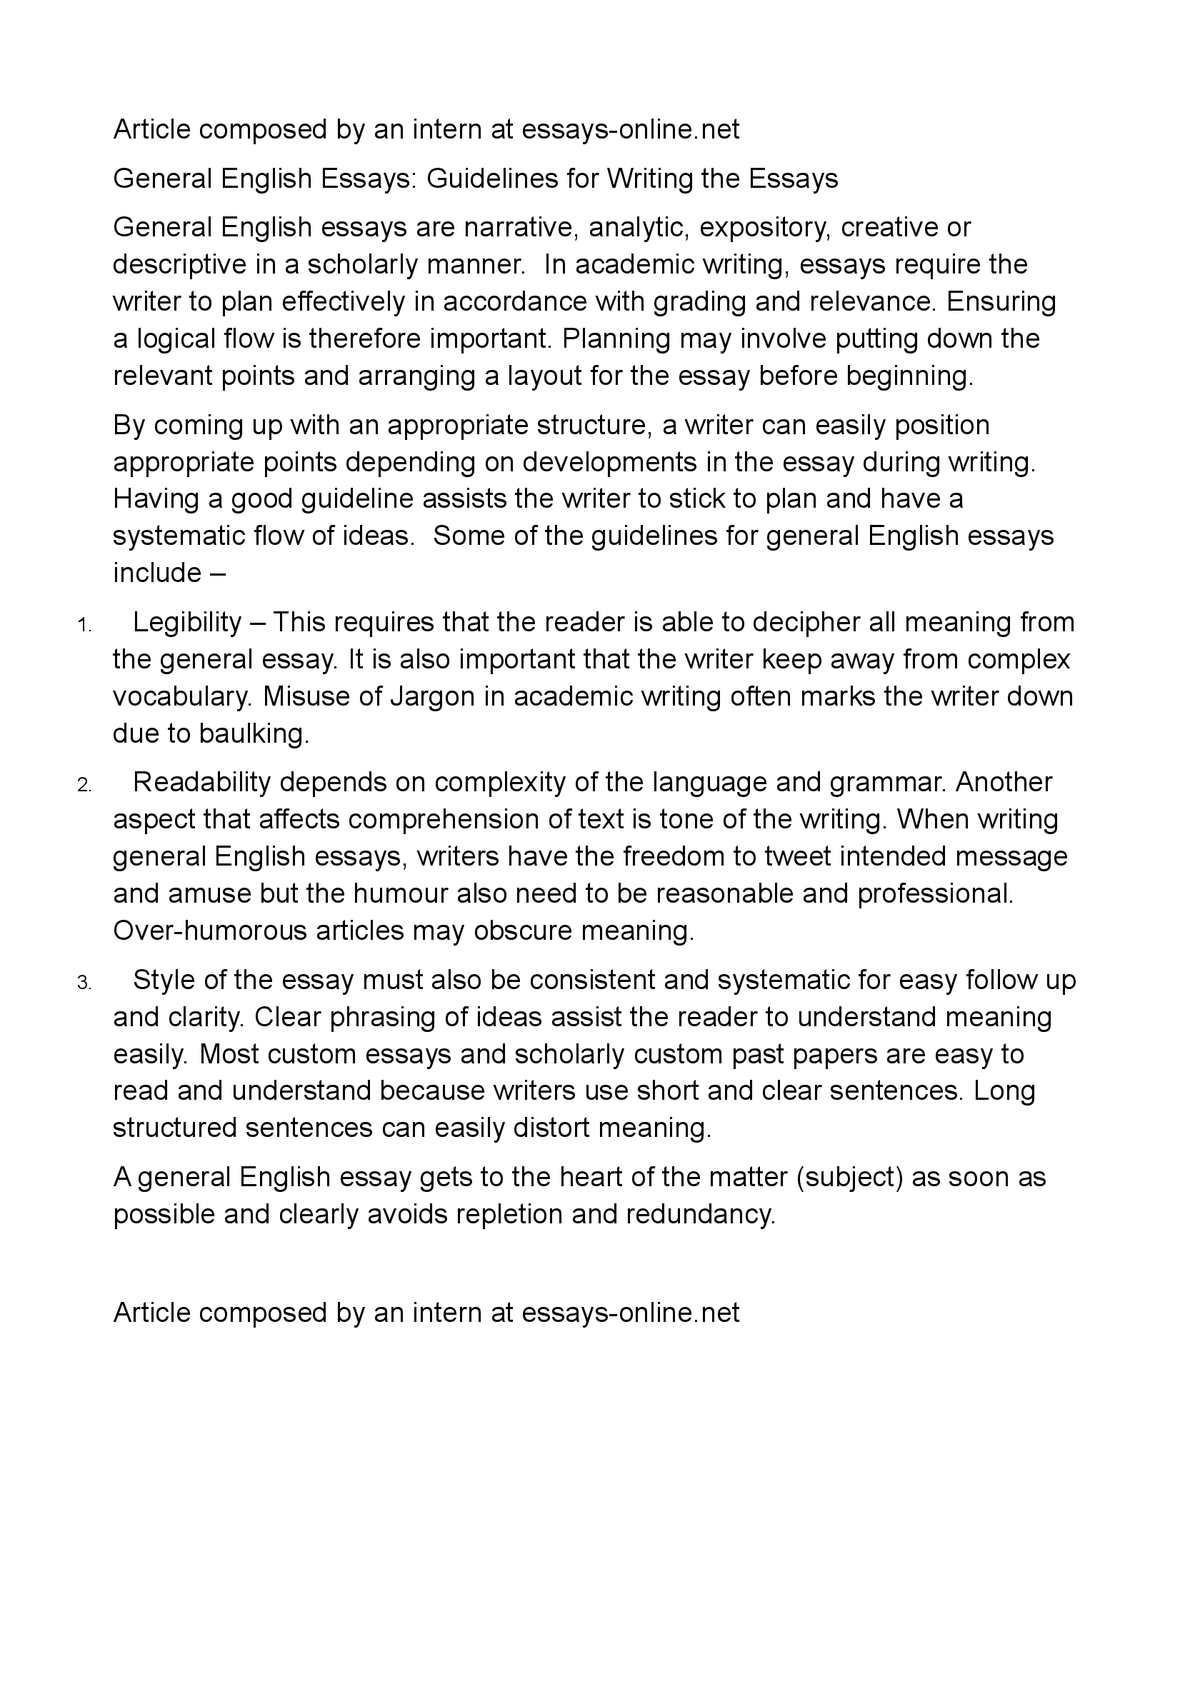 calamo  general english essays guidelines for writing the essays